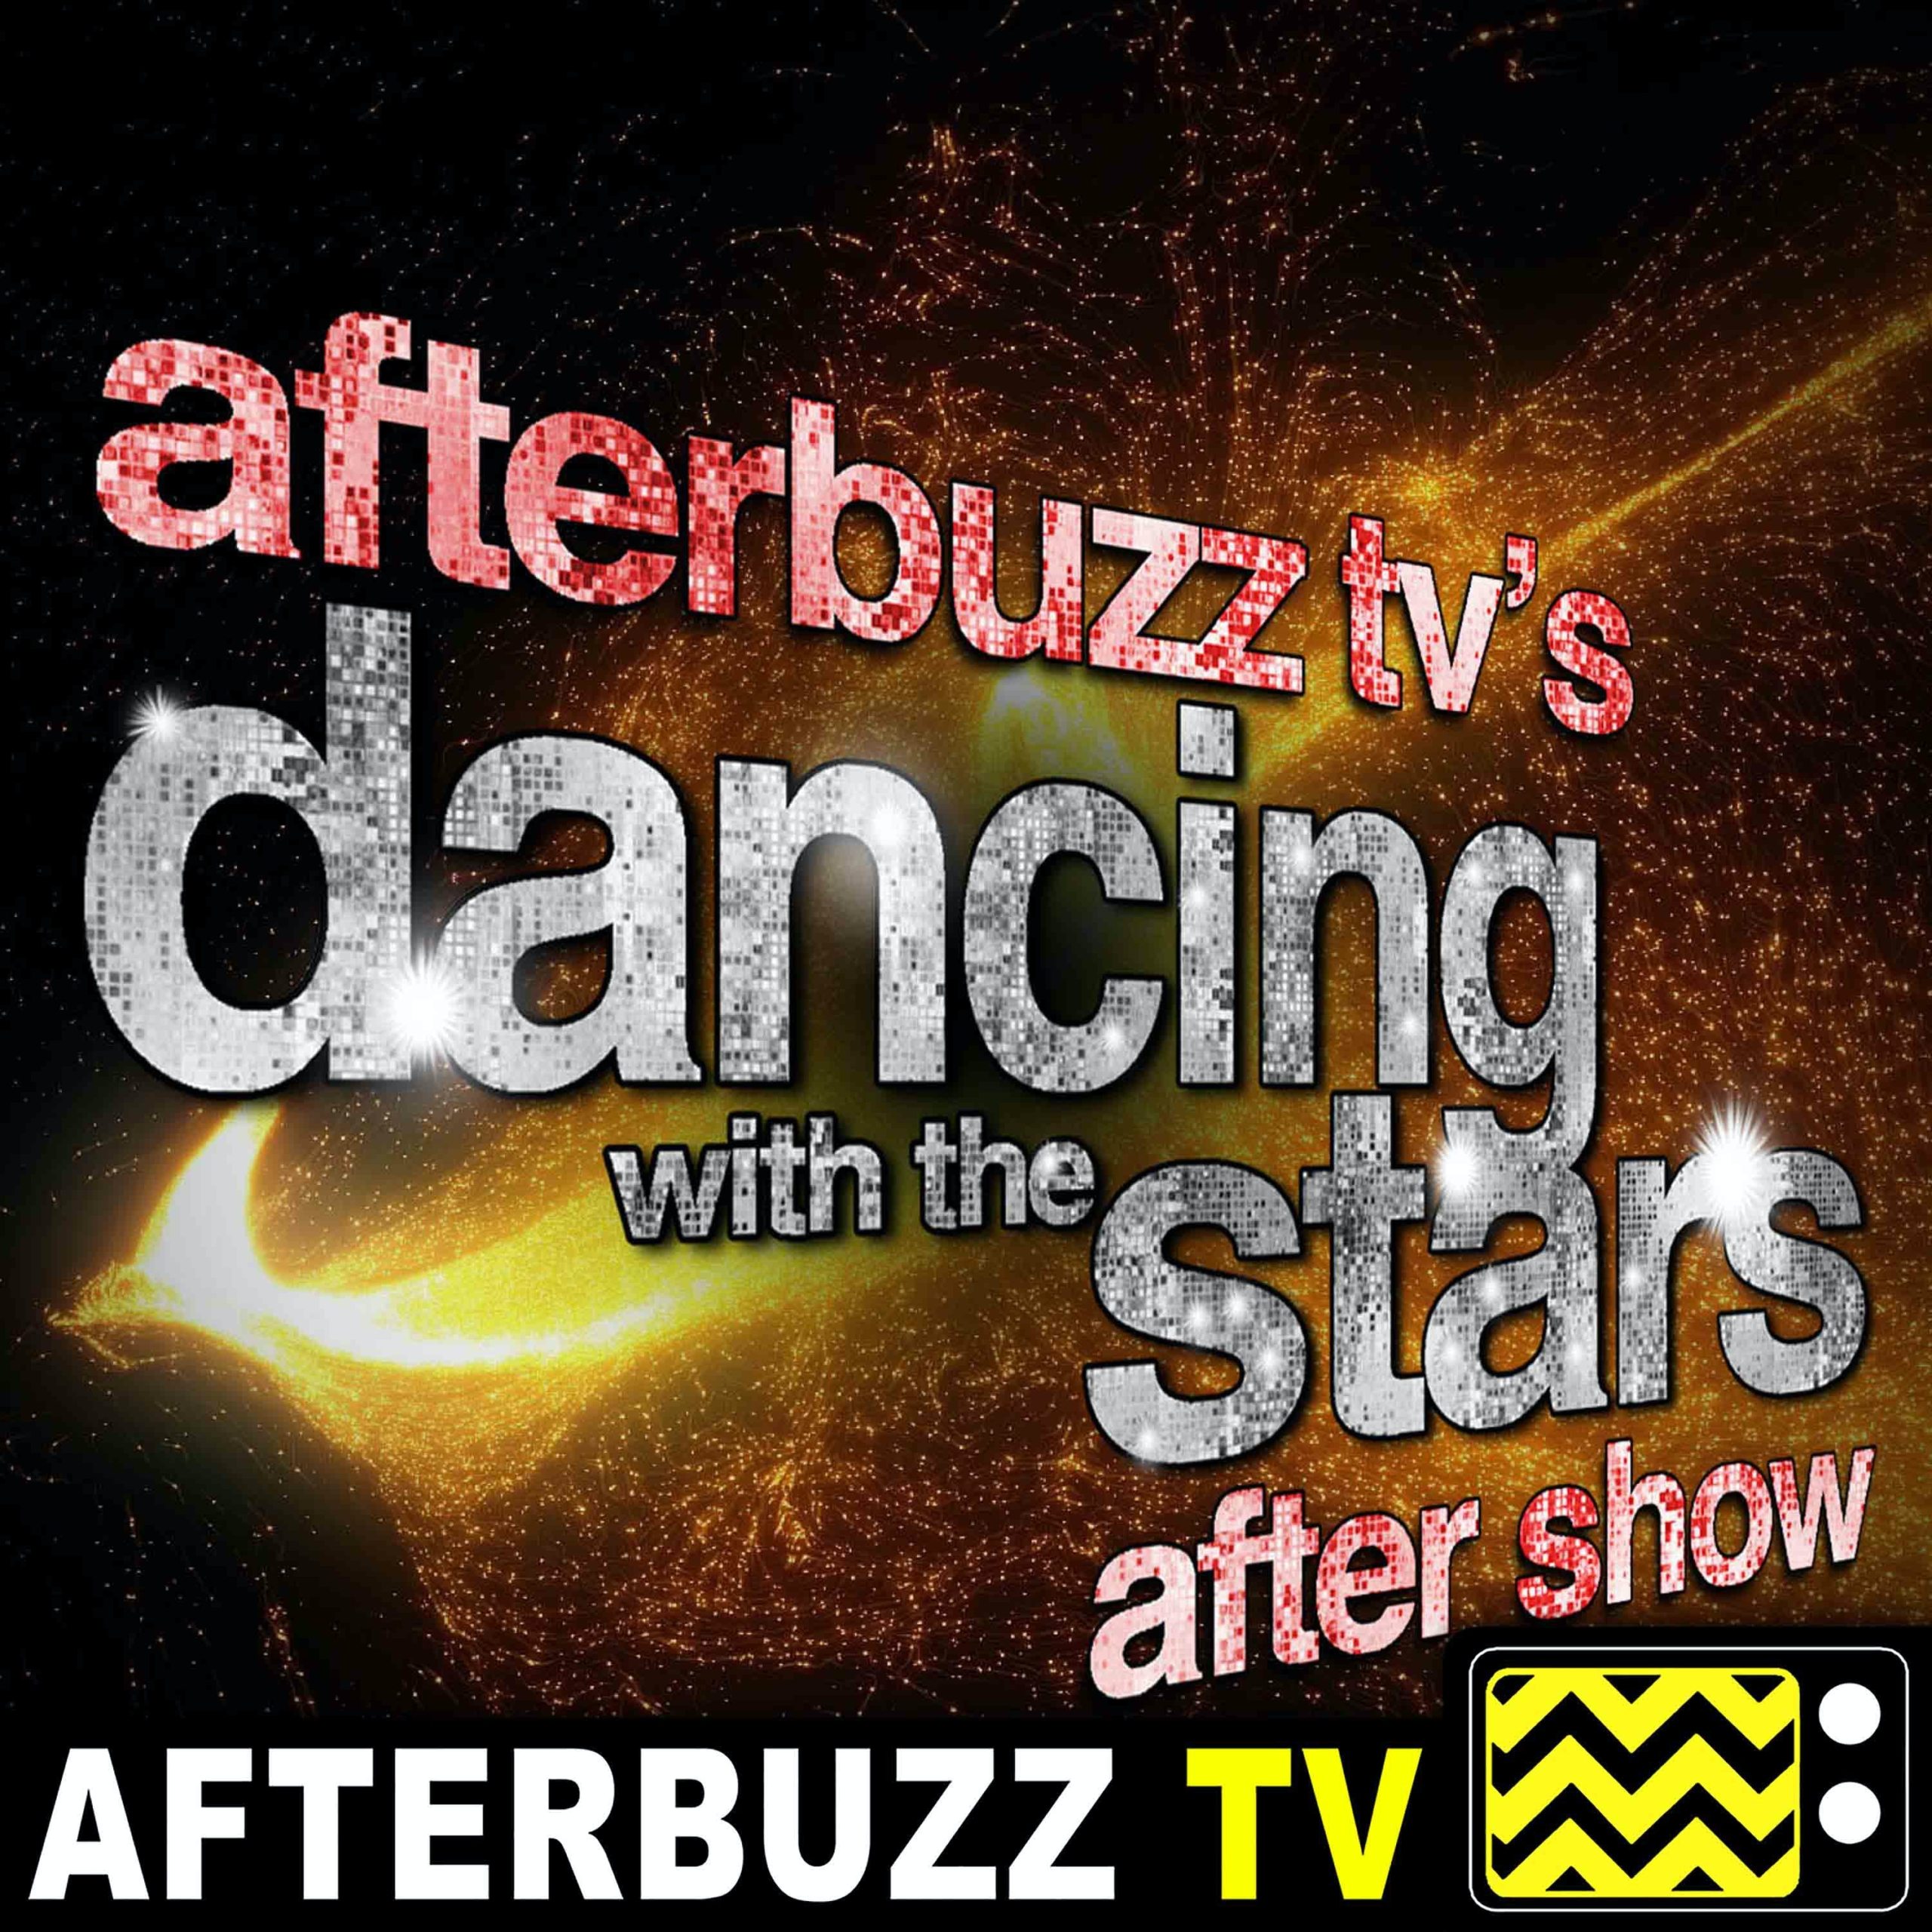 The Dancing with the Stars Podcast